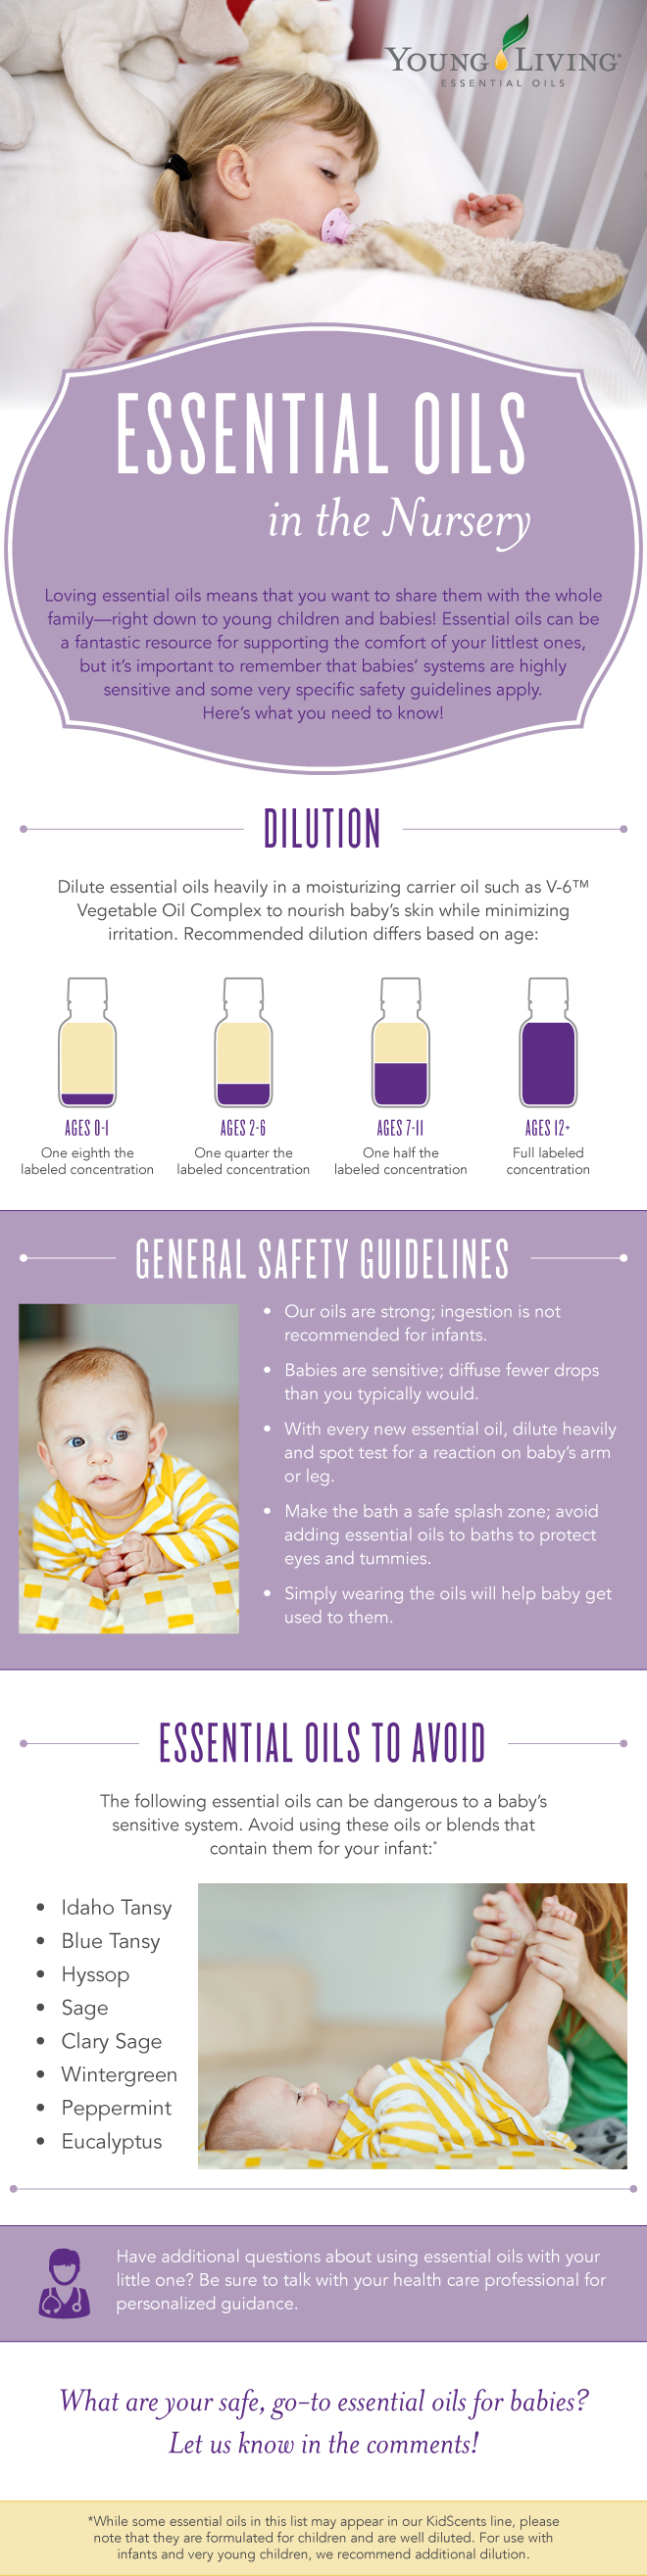 All Natural Essential Oils For Babies